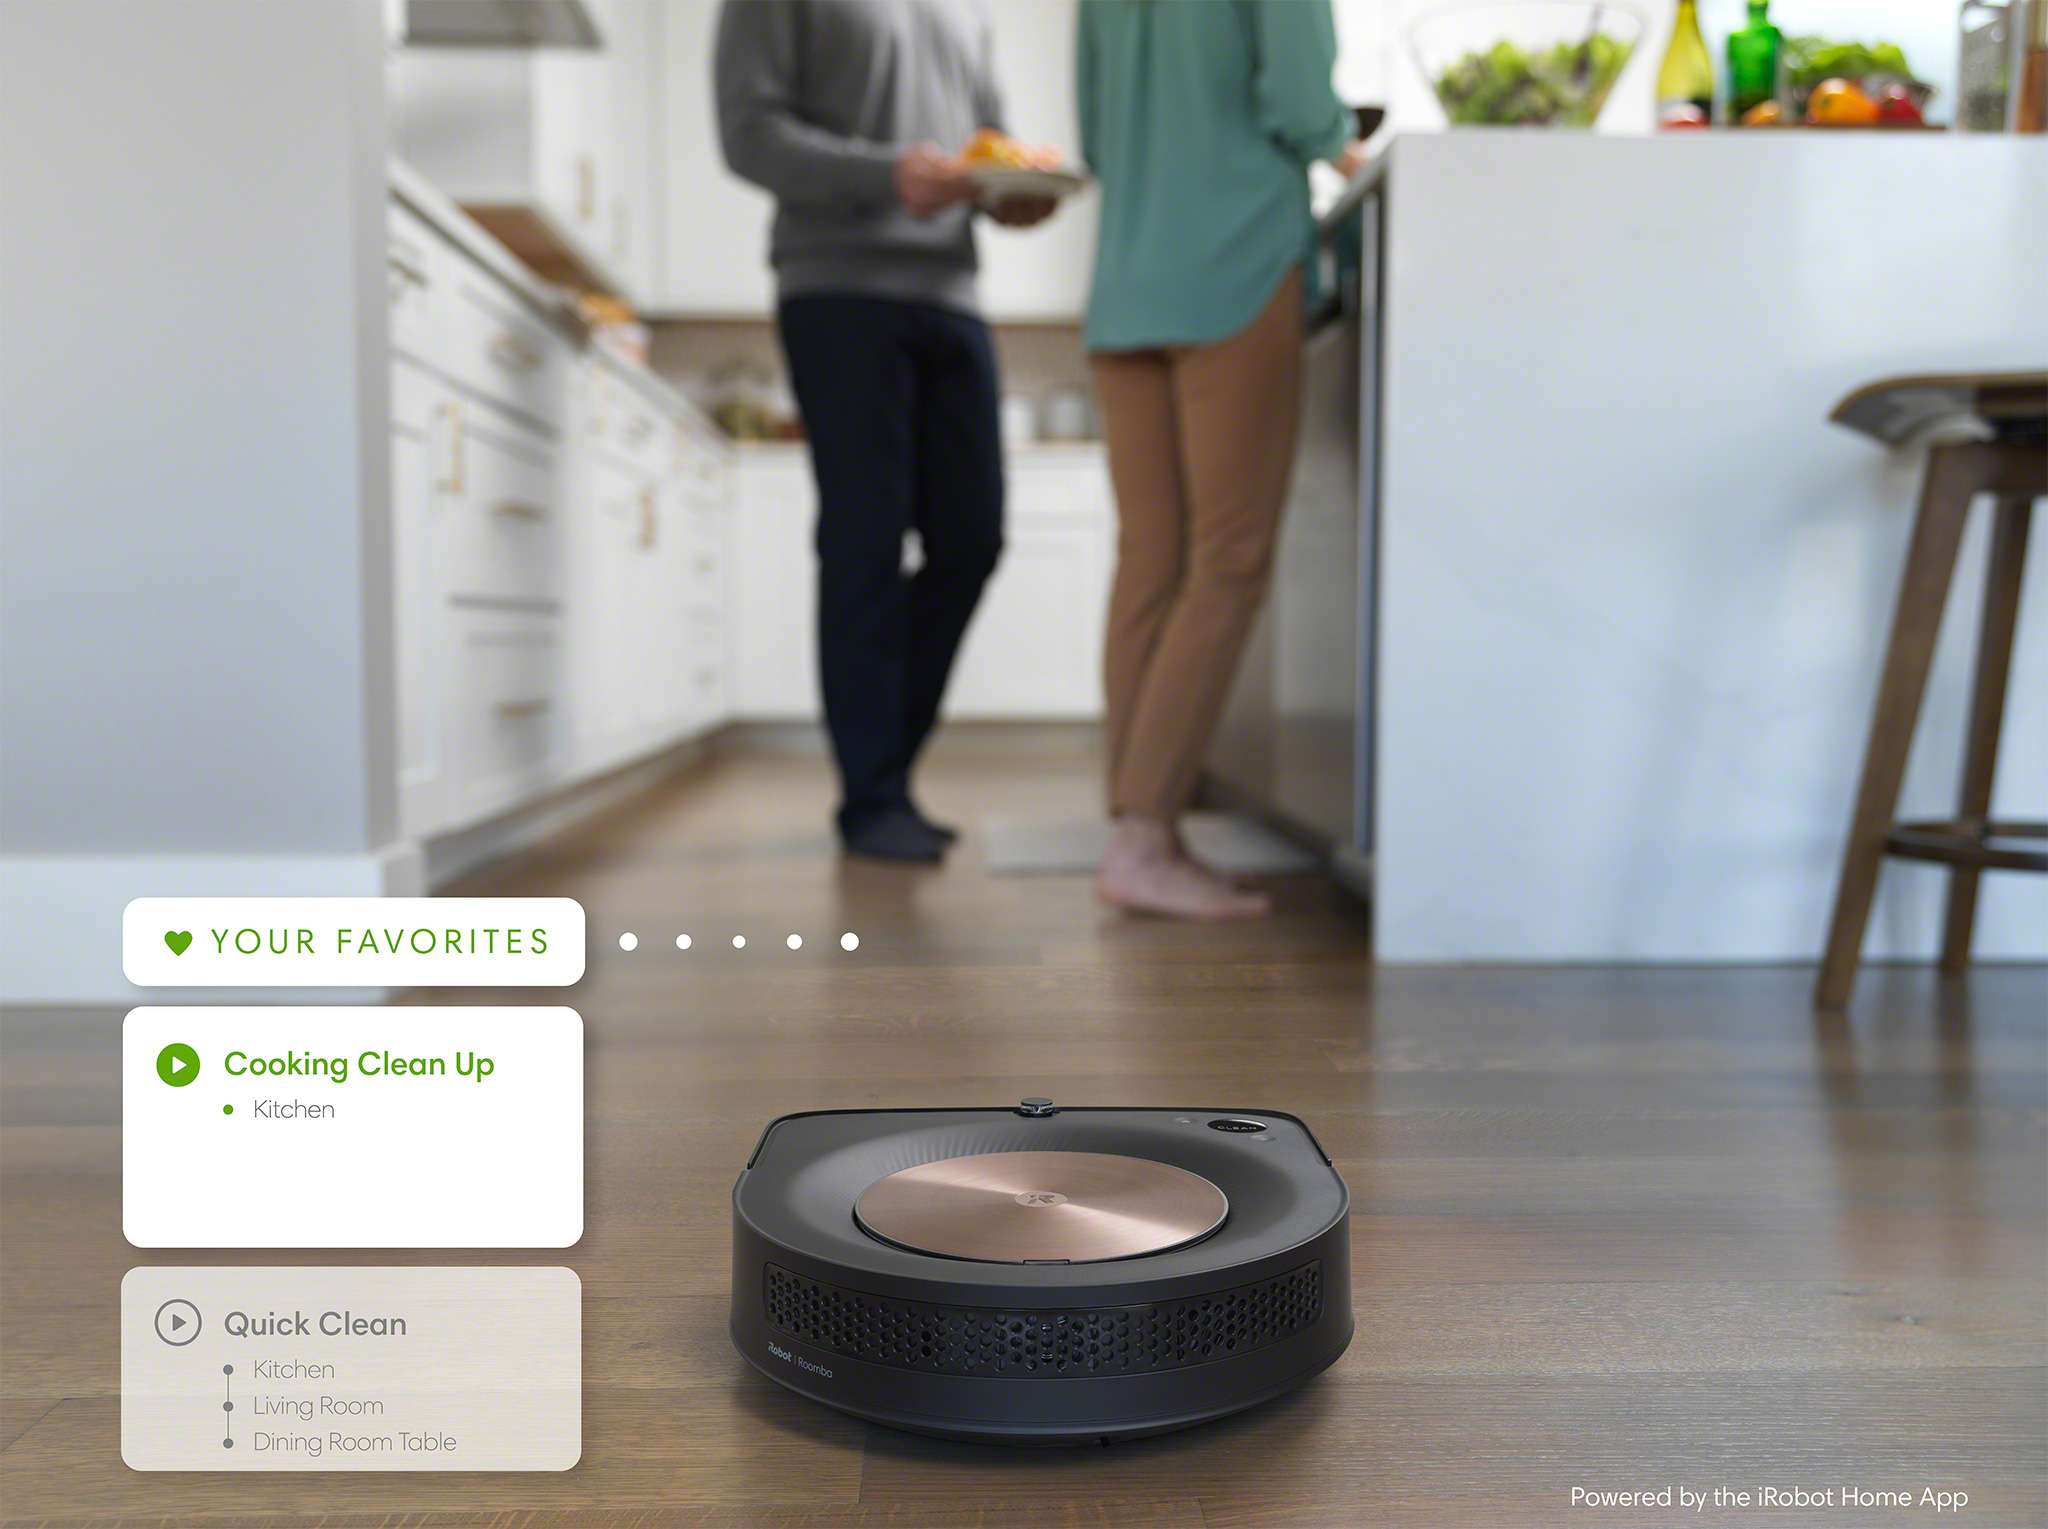 "Favorites in the new iRobot Home App enable users to quickly create and access their own pre-set cleaning routines. Create favorites like, ""After Dinner"" that instructs the robot to clean the dining room and in front of the kitchen counter. Or ""Bedtime"" to clean the playroom and living room floors. Or ""Everywhere"" to clean the whole home."